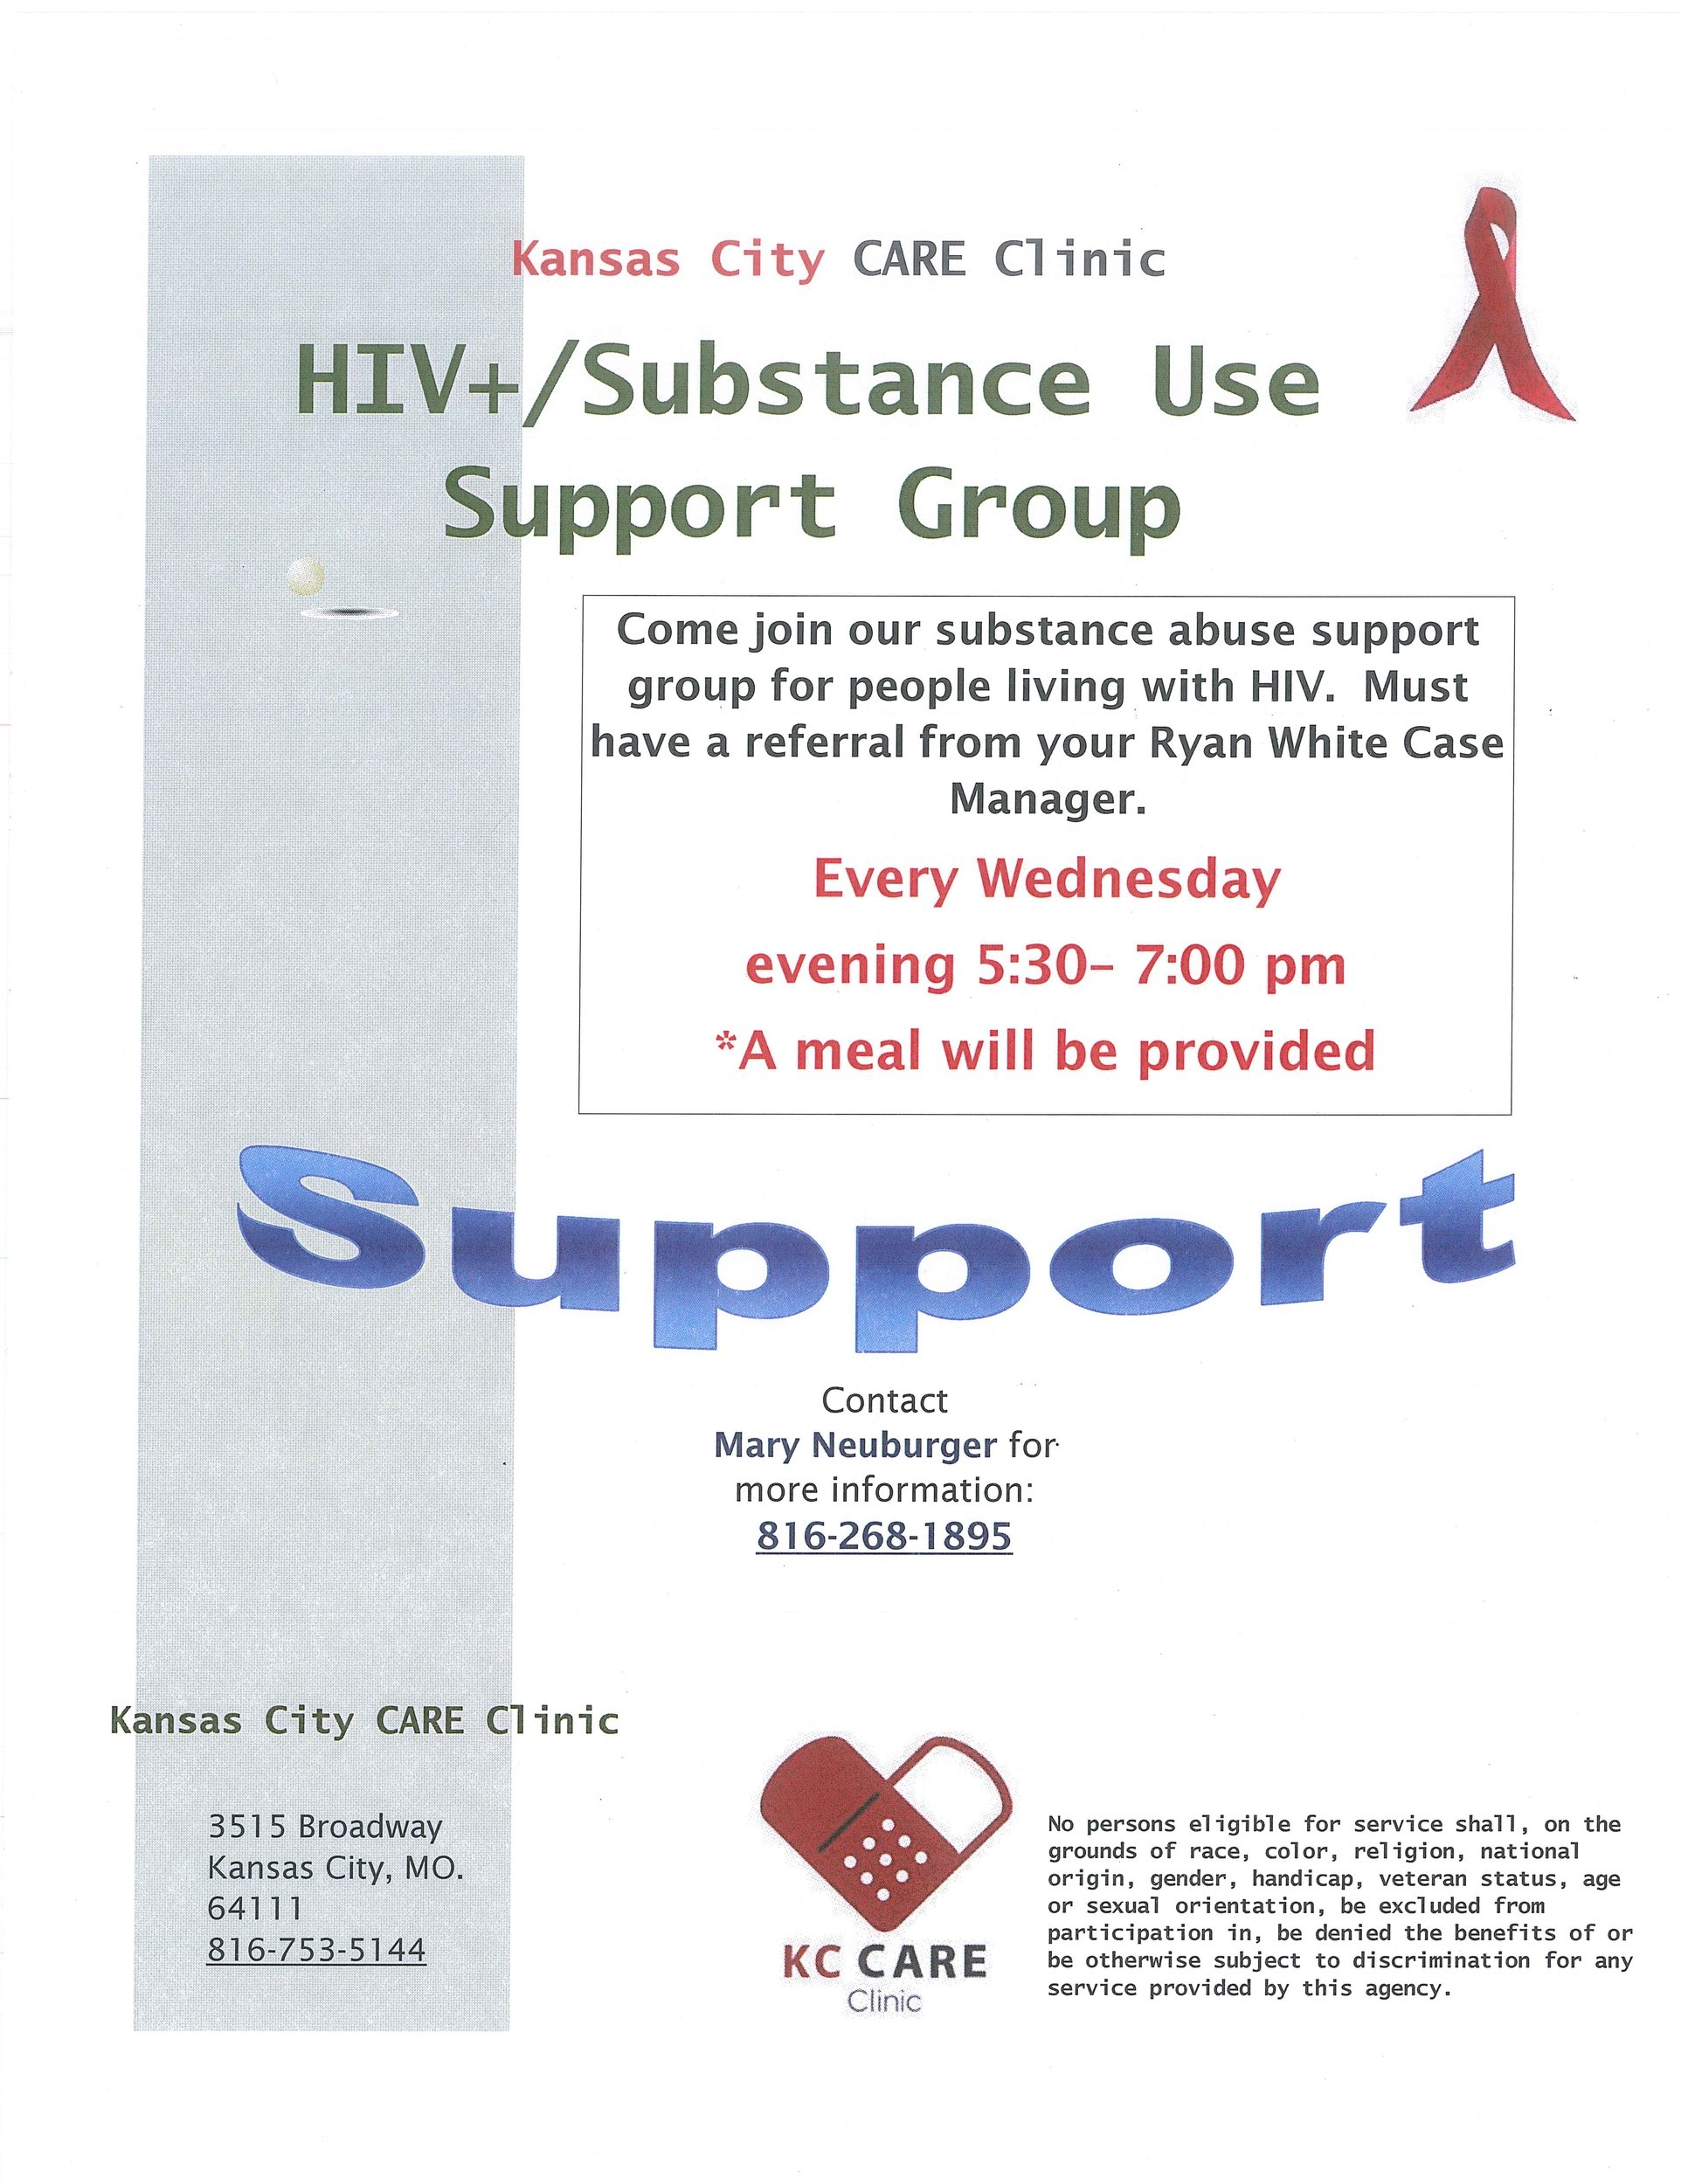 HIV+ Substance Use Support Group